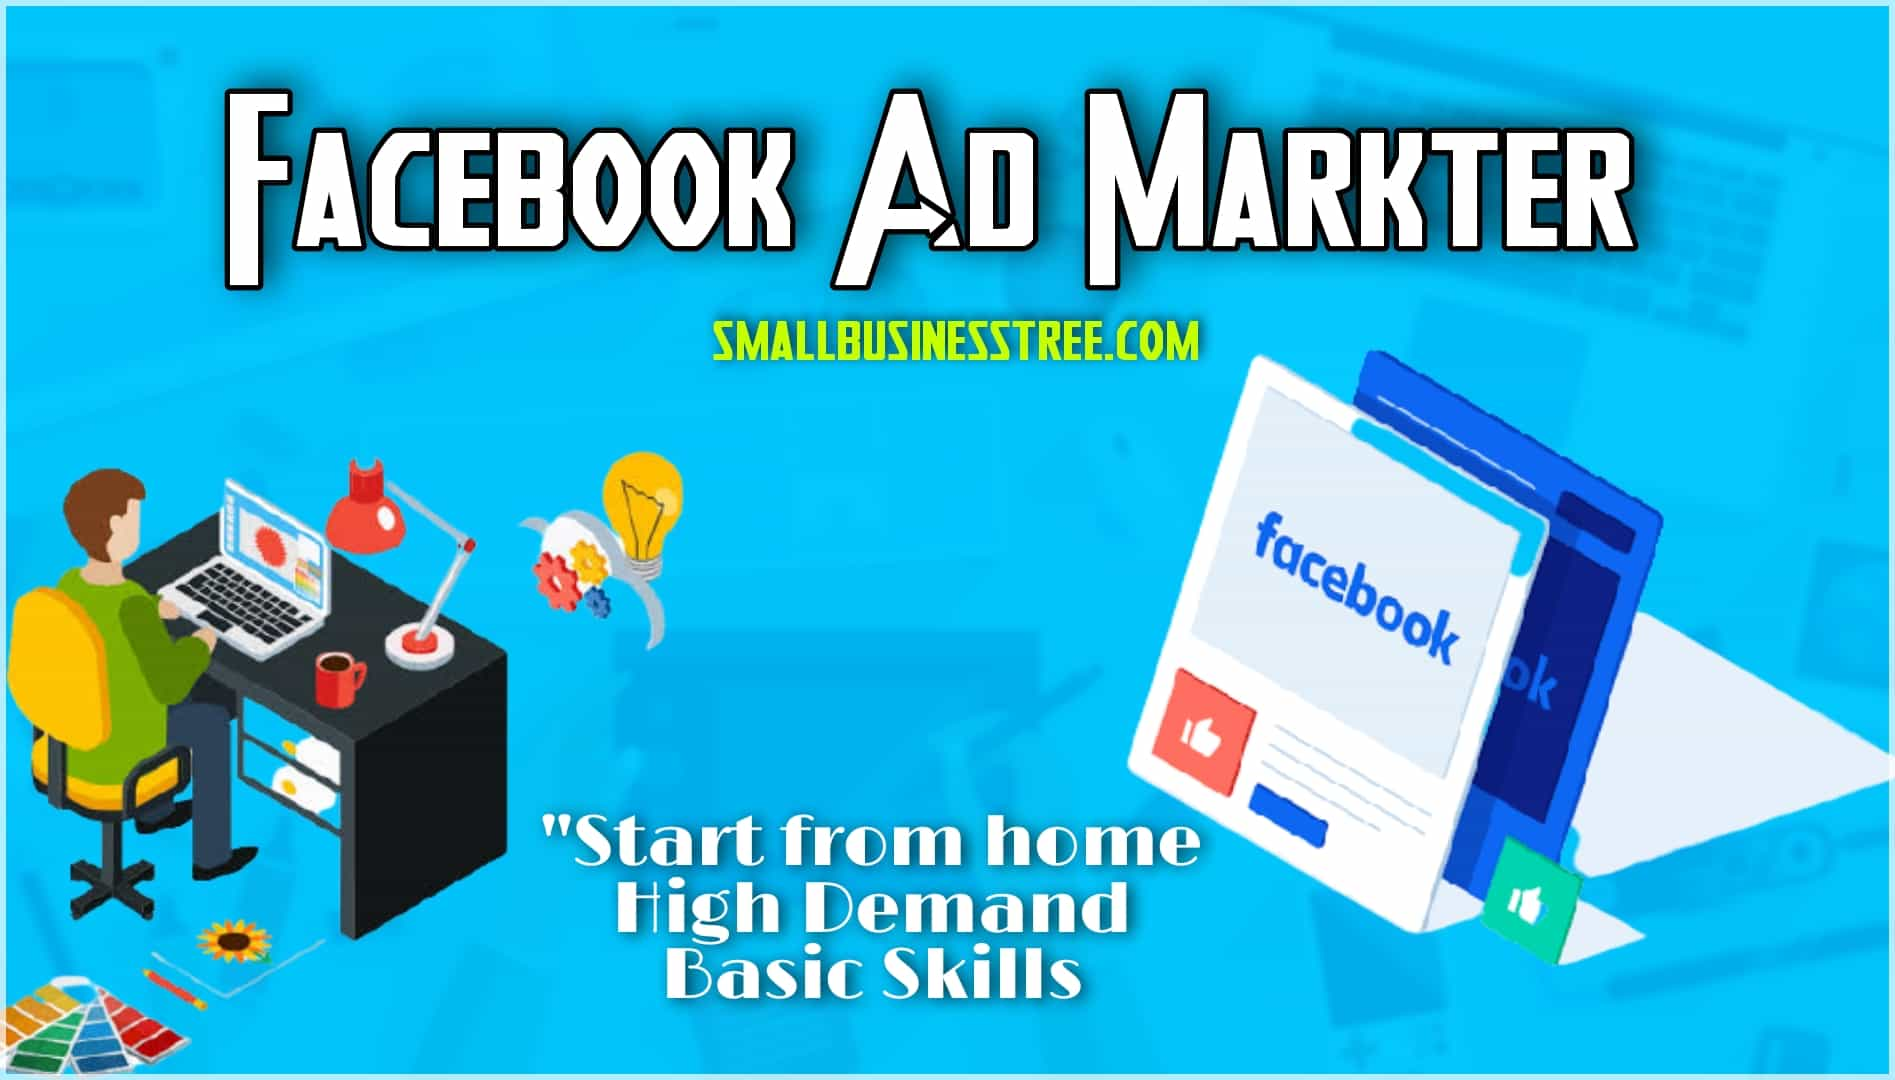 Facebook Ad Marketer Business in USA